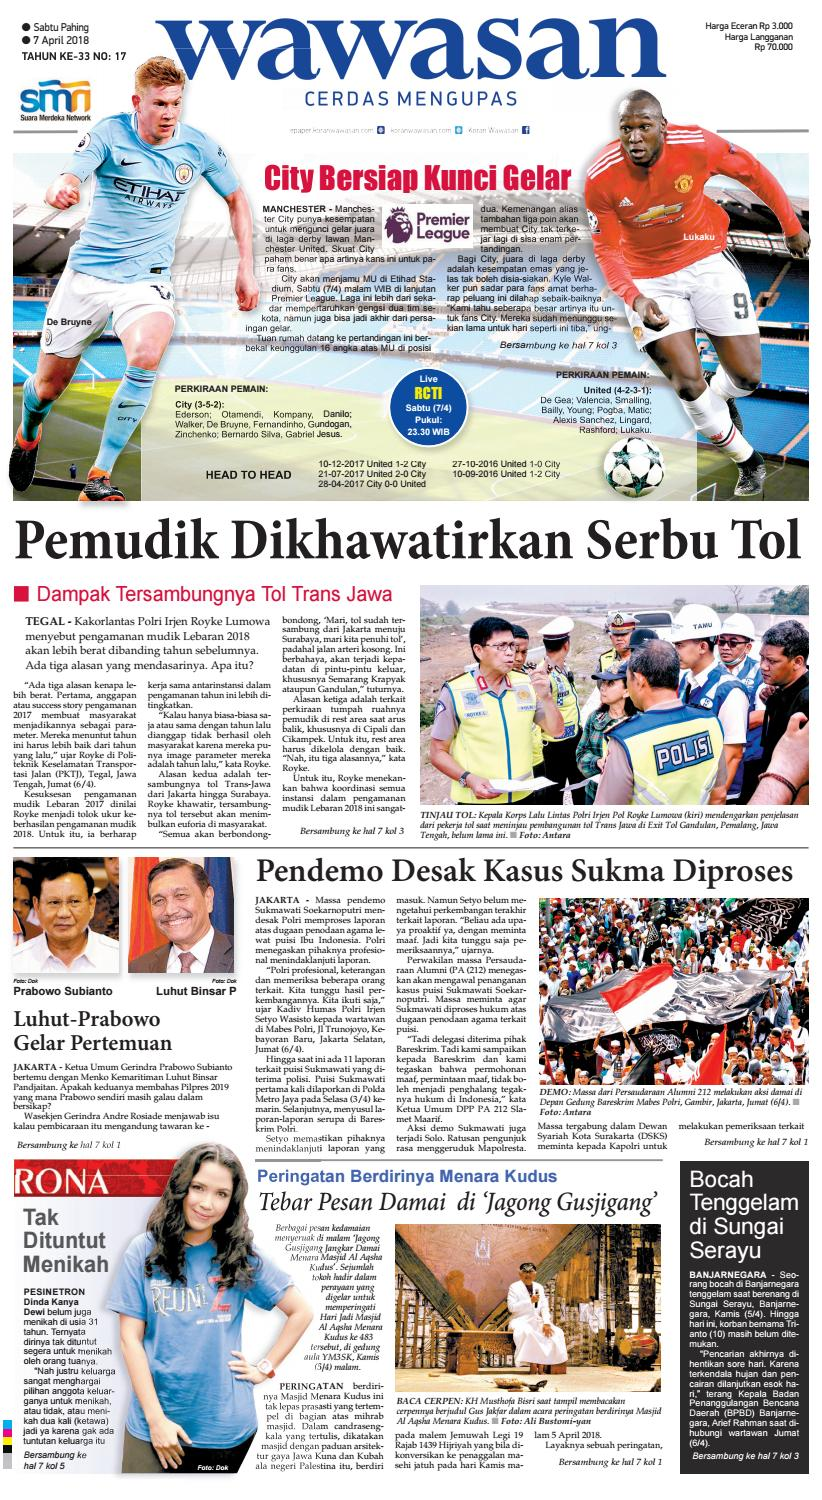 WAWASAN 07 April 2018 By KORAN PAGI WAWASAN Issuu